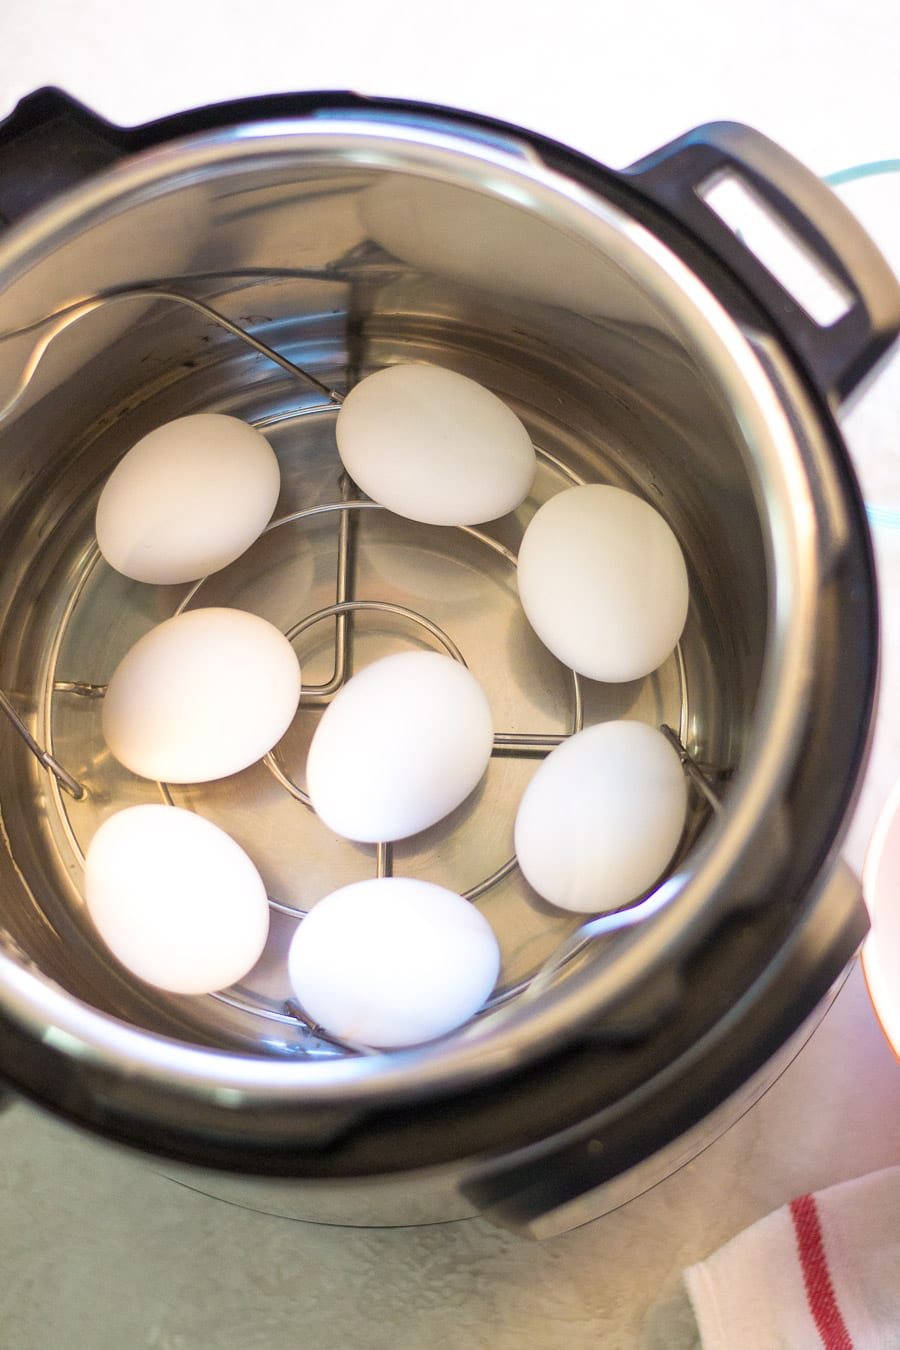 How to Cook Eggs in a Pressure Cooker | Sarcastic Cooking